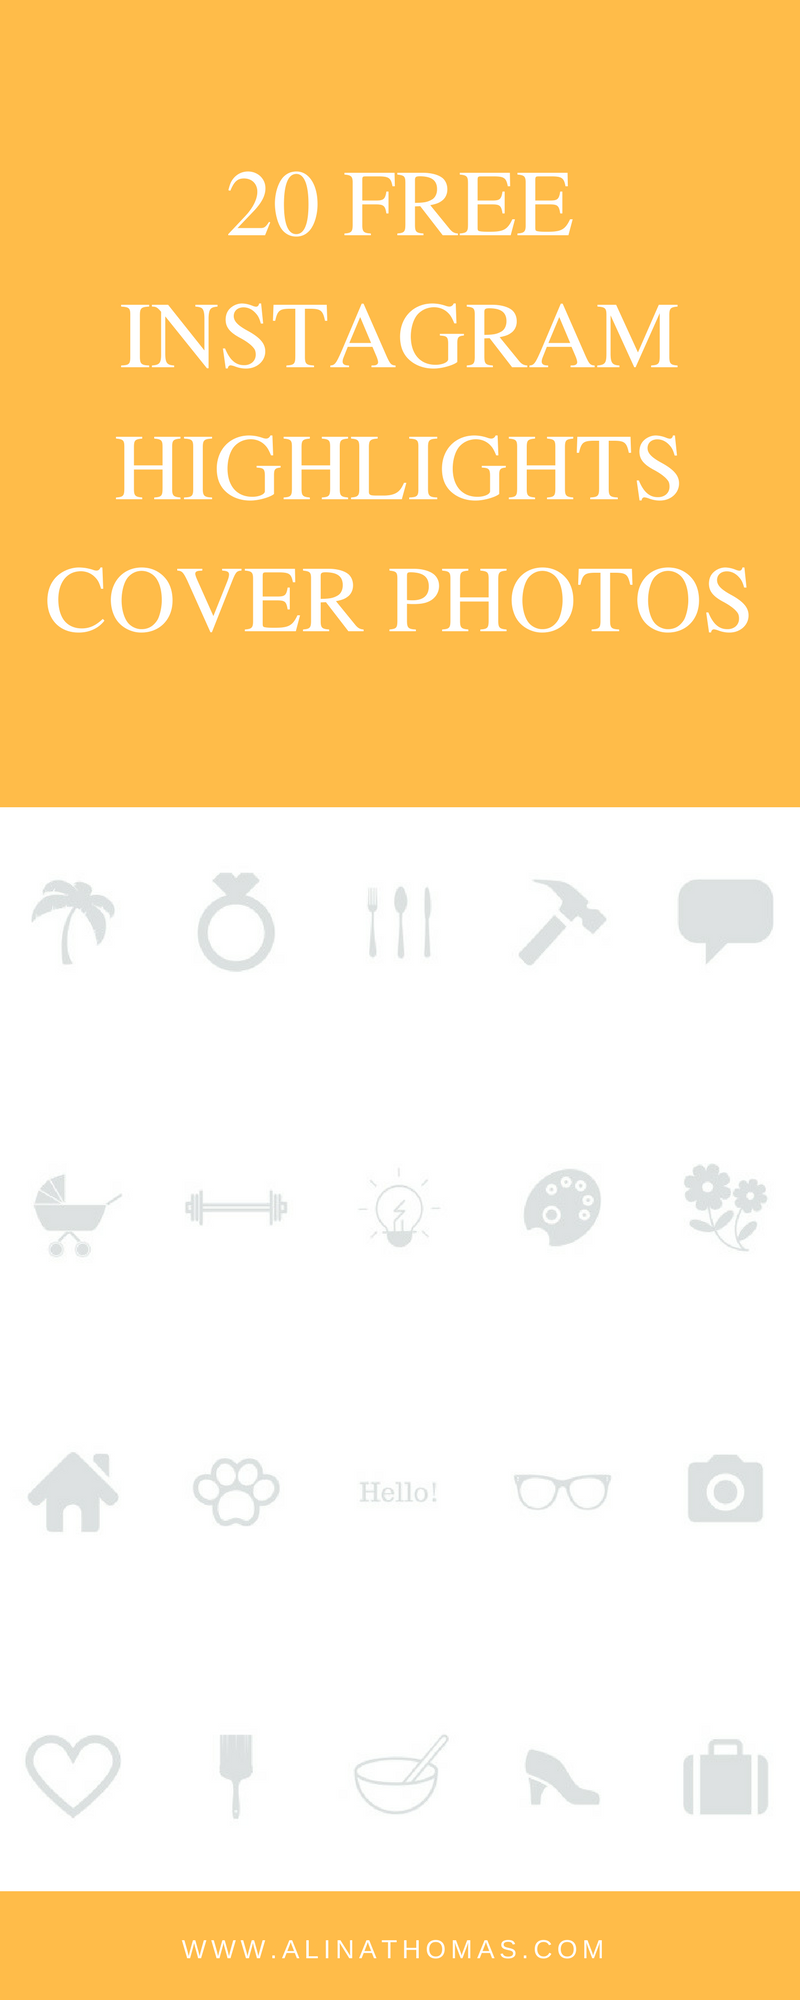 How To Create Instagram Highlight Cover Photos | Pinterest | Free ...